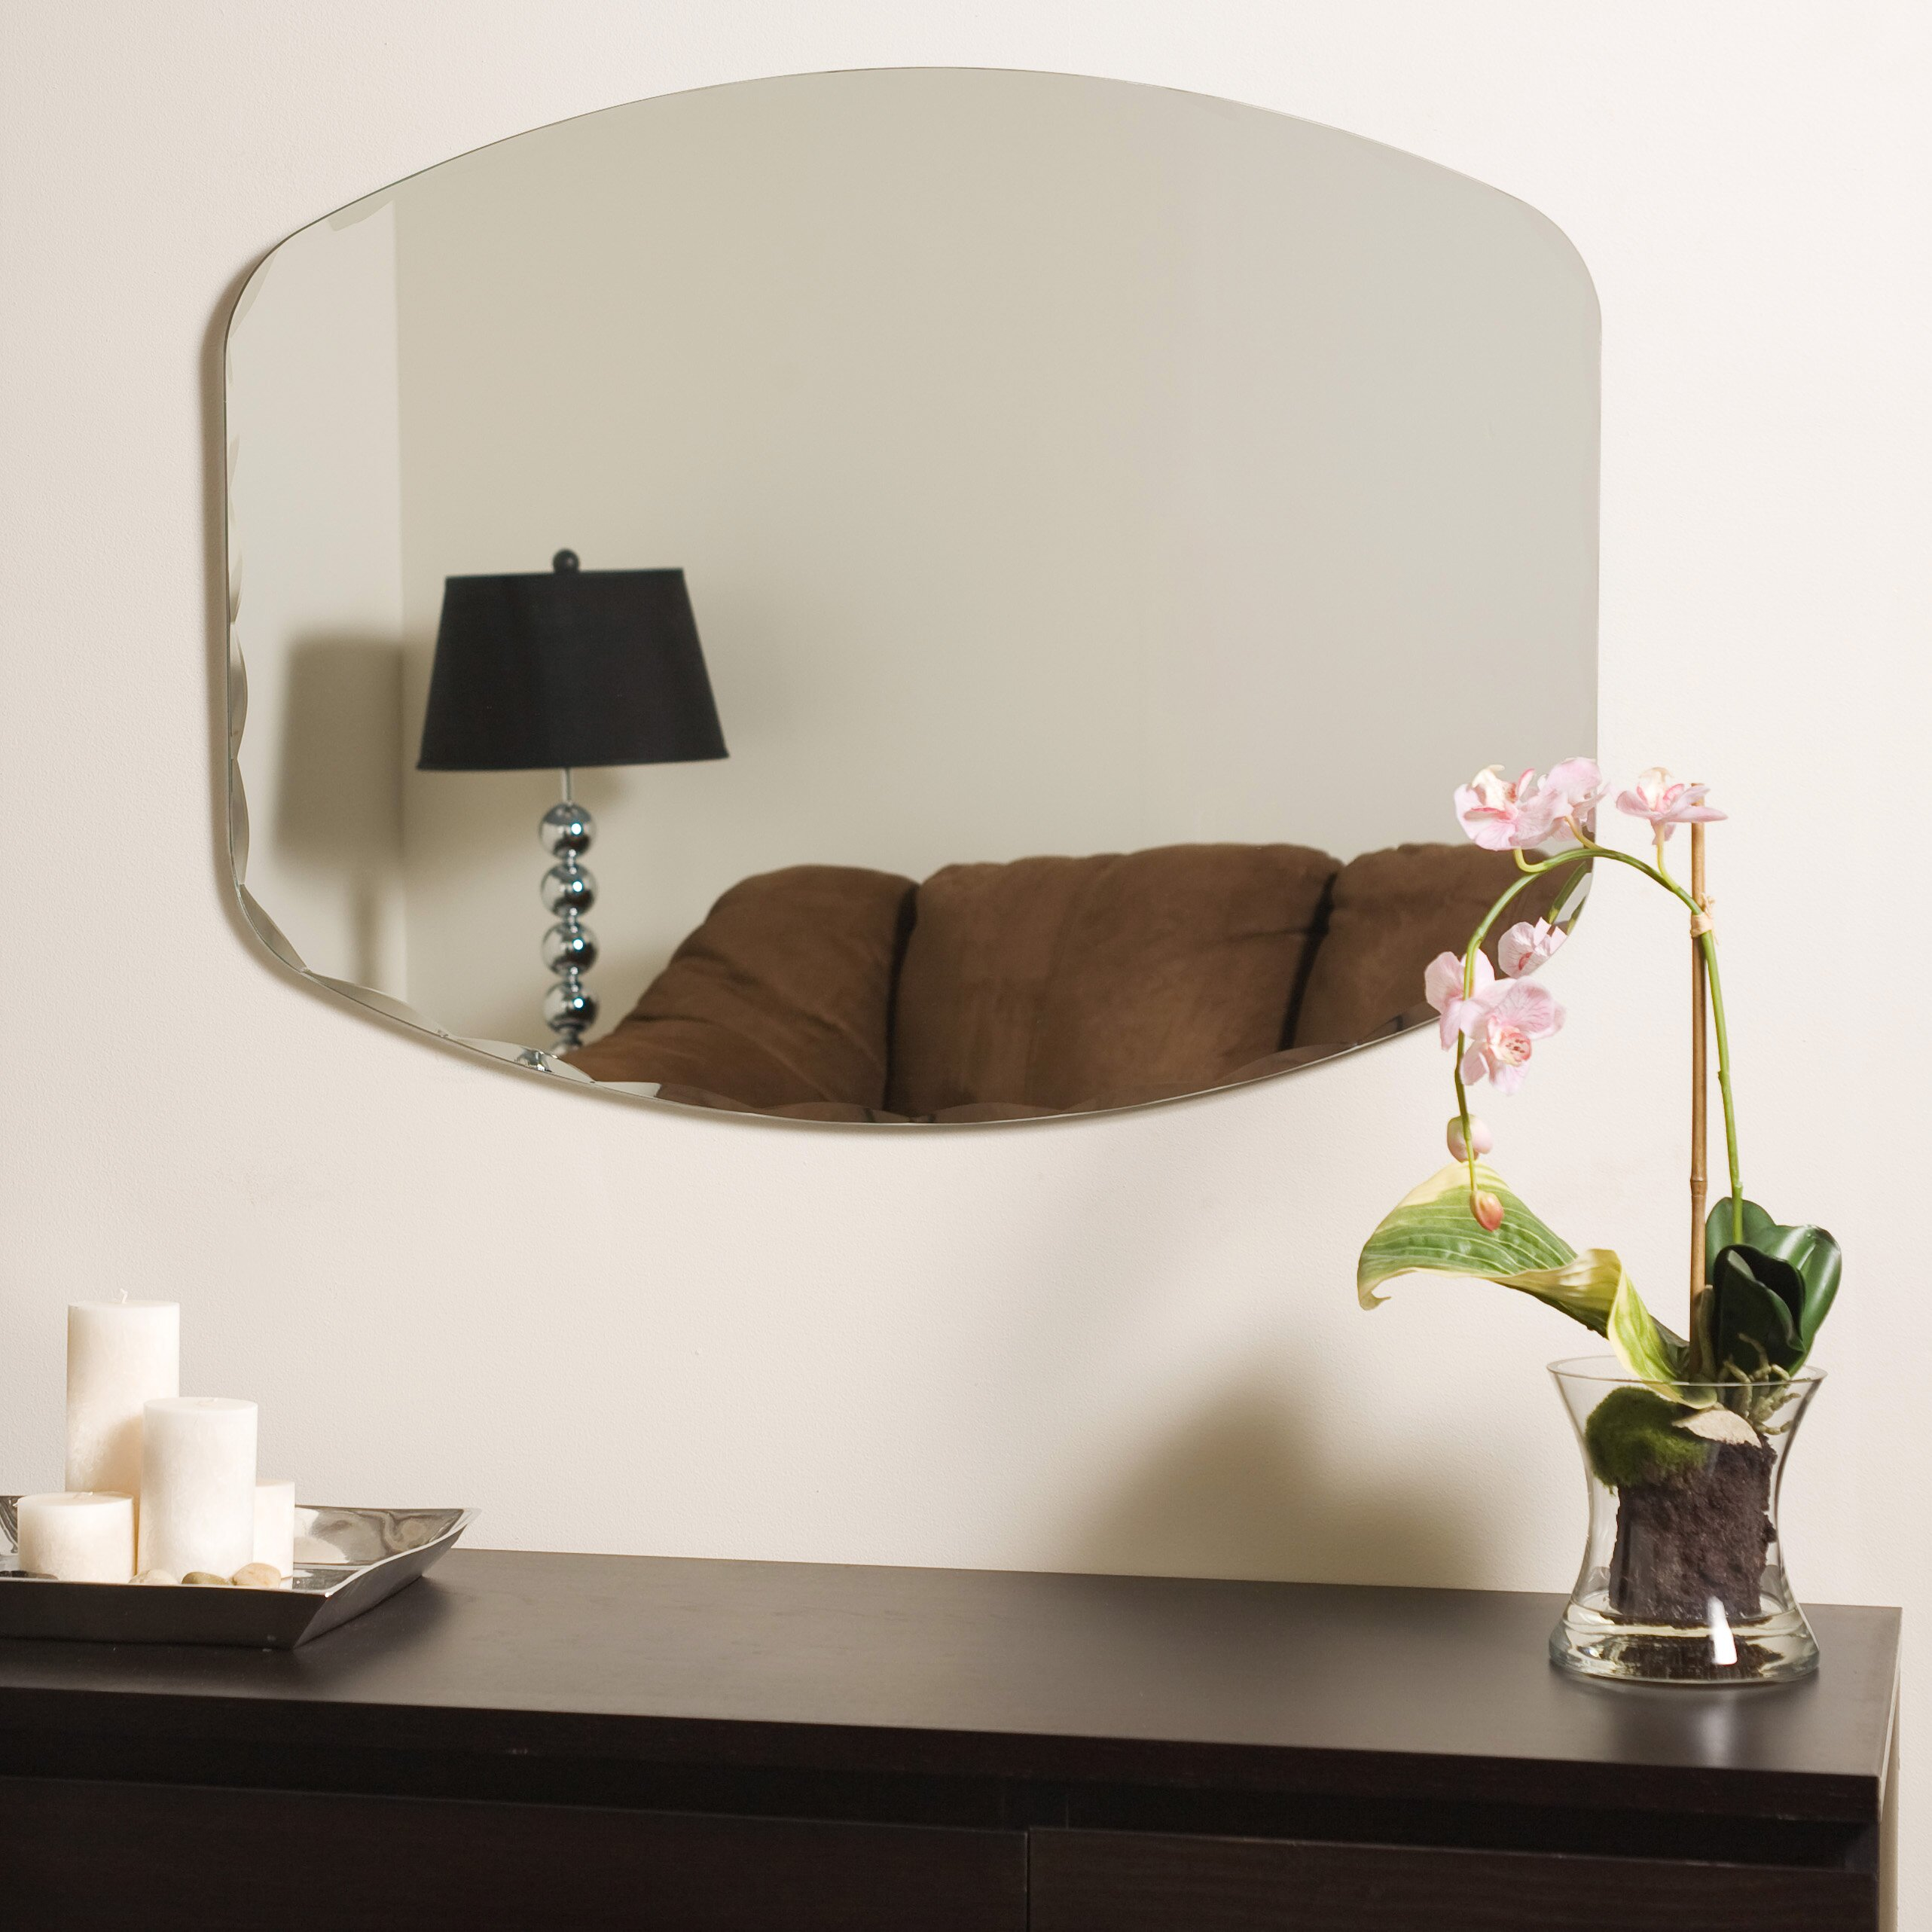 Varick gallery logan frameless wall mirror reviews wayfair for Frameless wall mirror